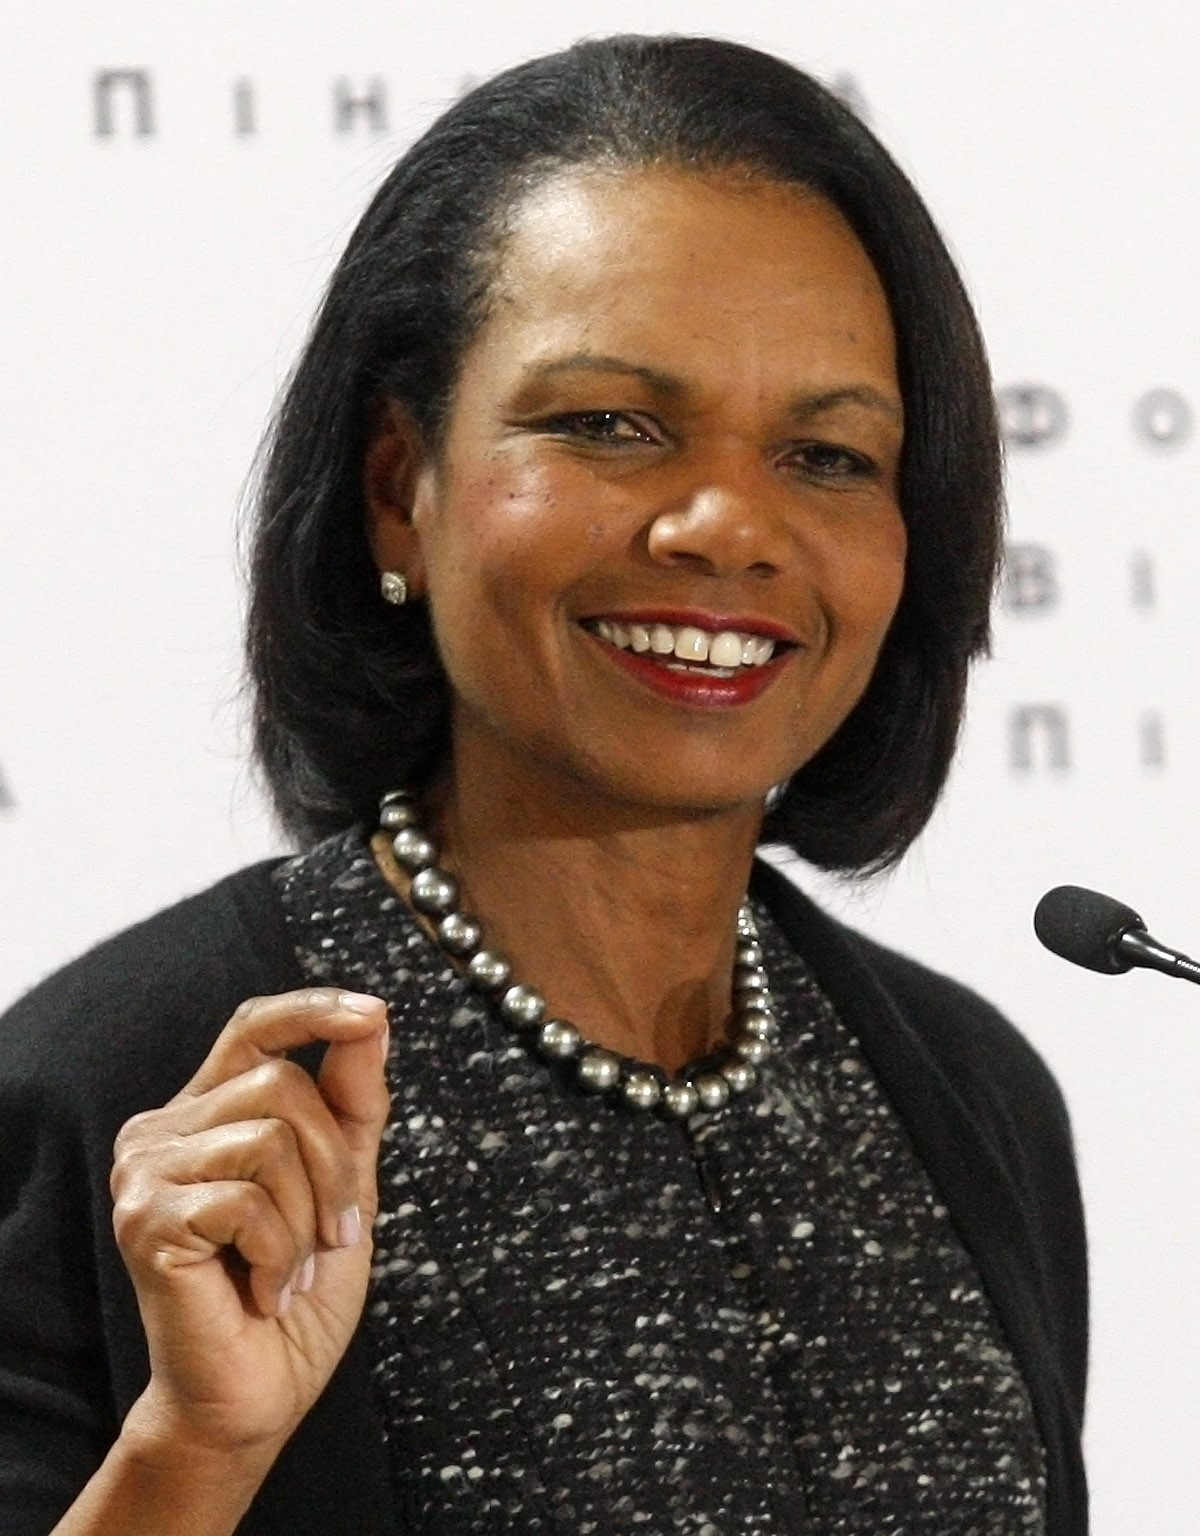 Former United States Secretary of State Condoleezza Rice delivers a speech in Kiev, Ukraine on Mar. 9, 2016.